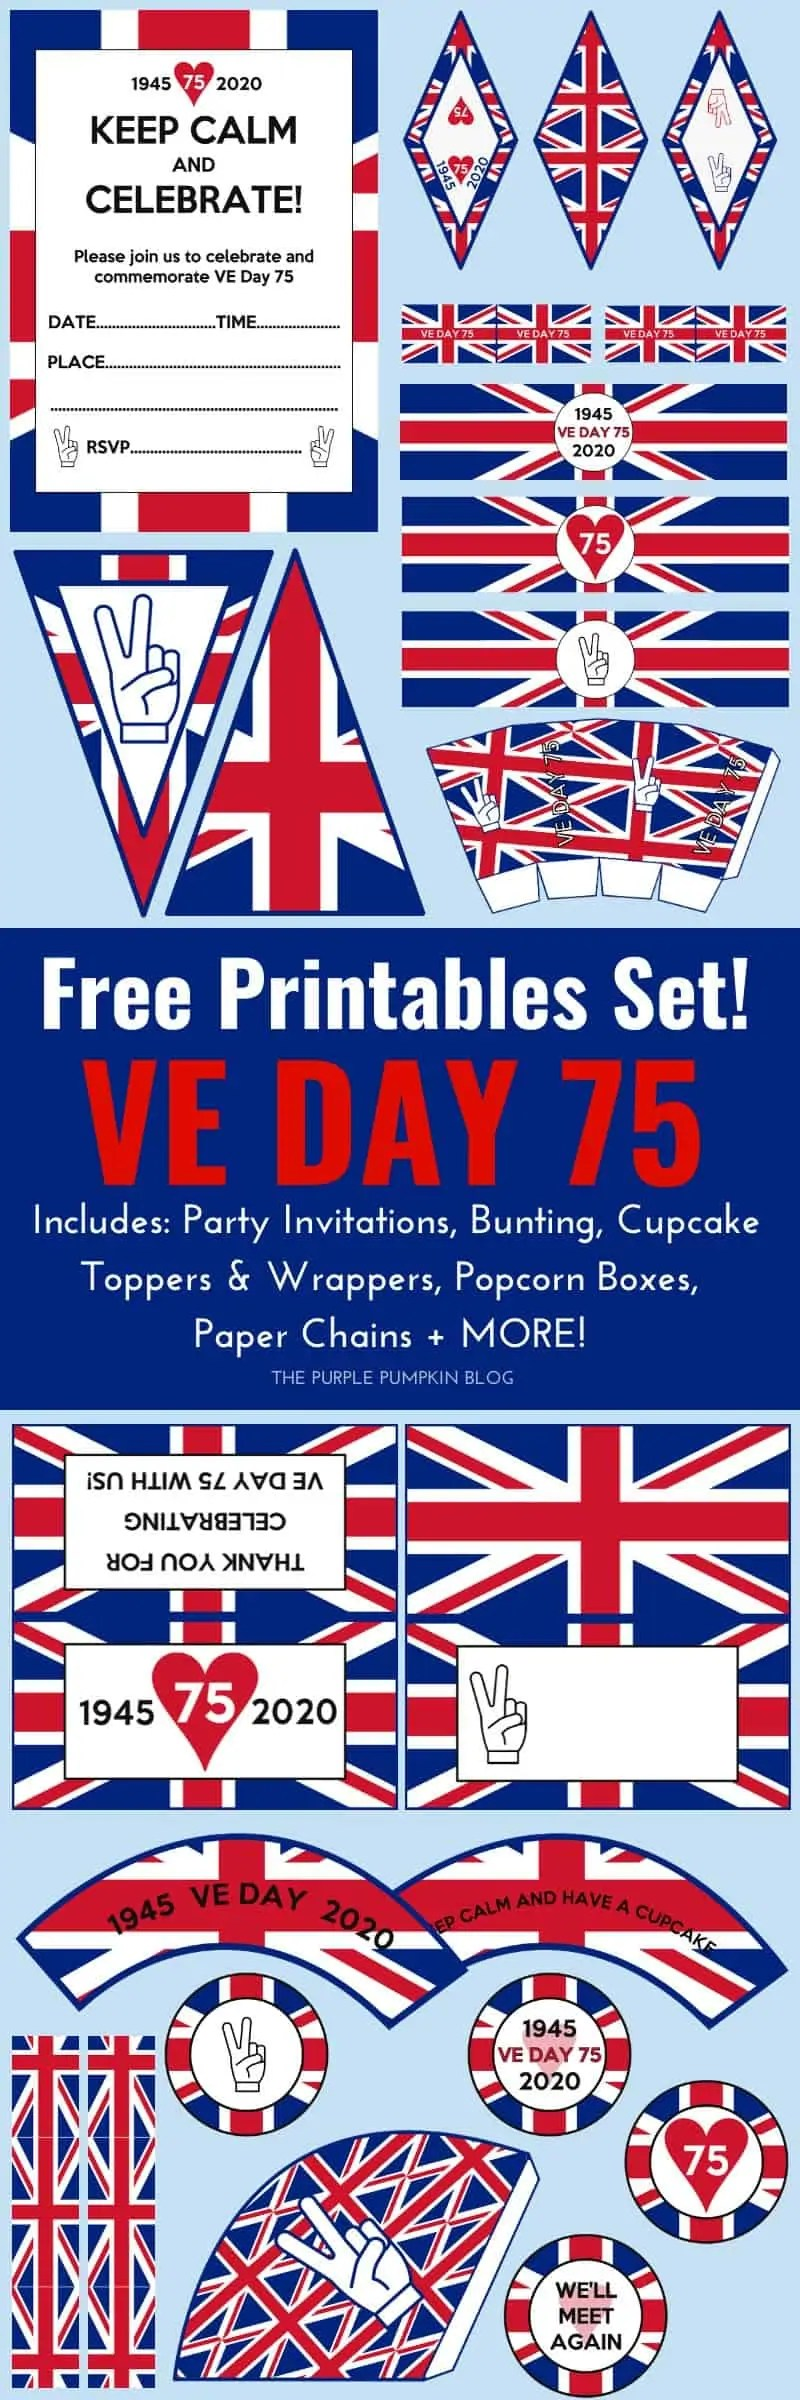 Free Printable VE Day Decorations